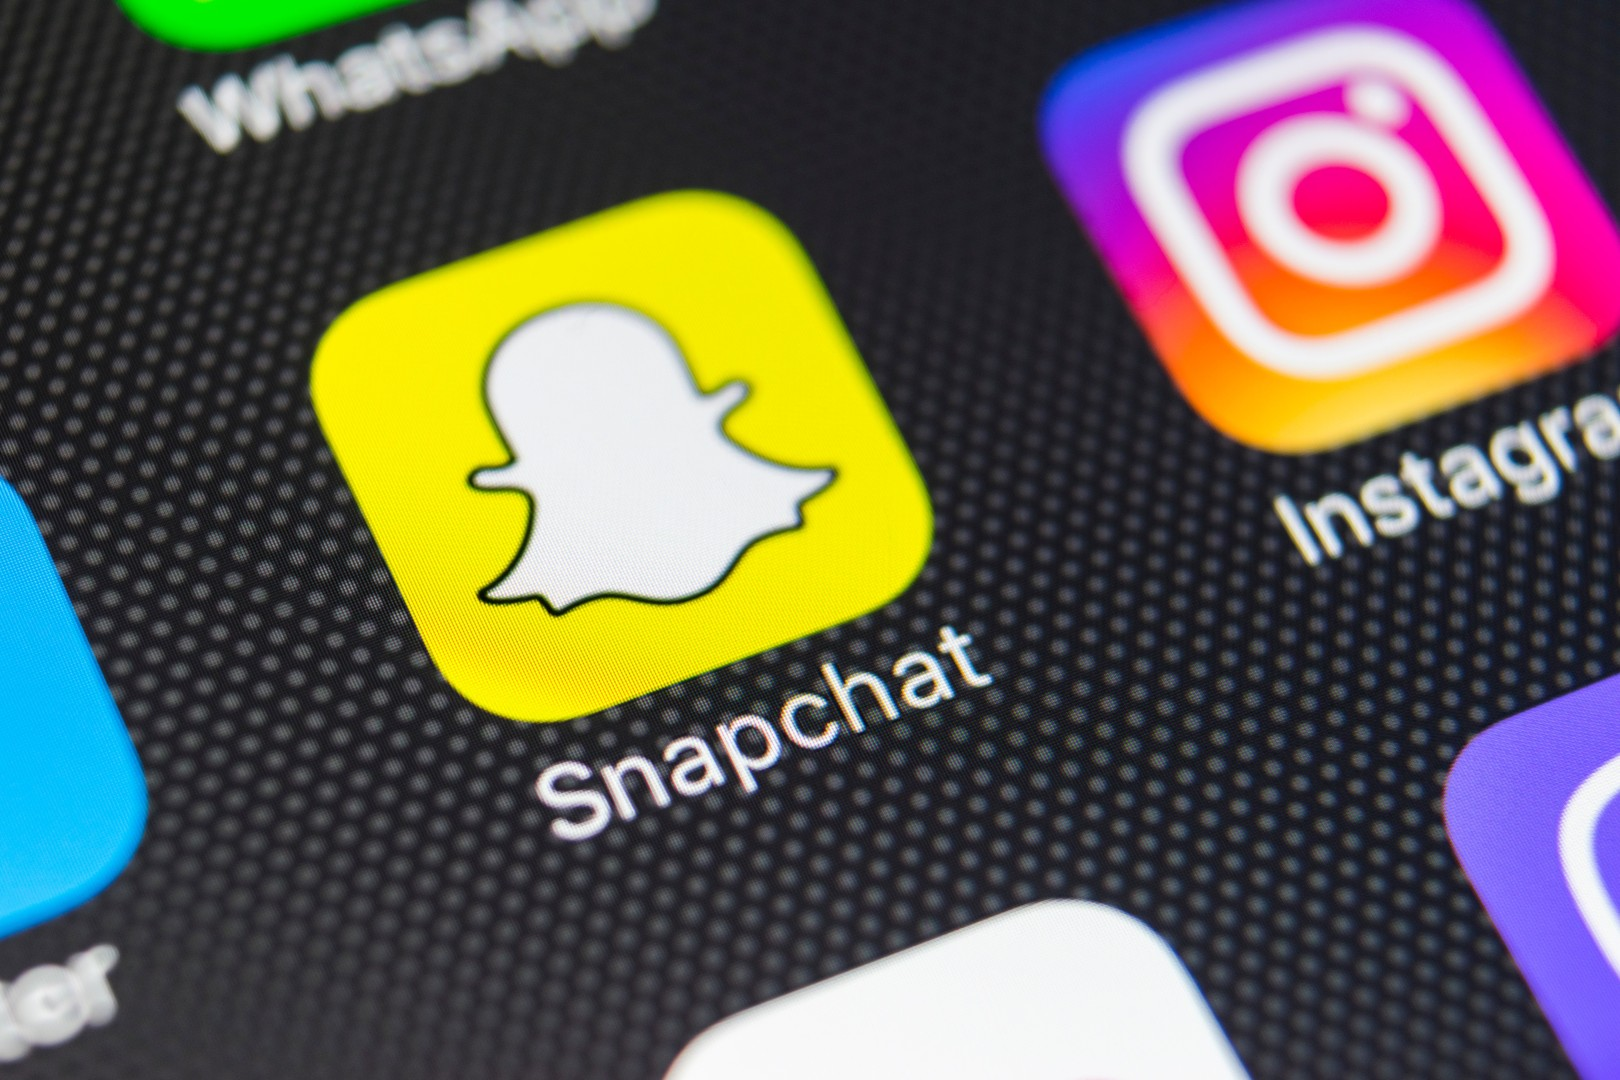 Snapchat's rise from obscure app to Facebook rival charted